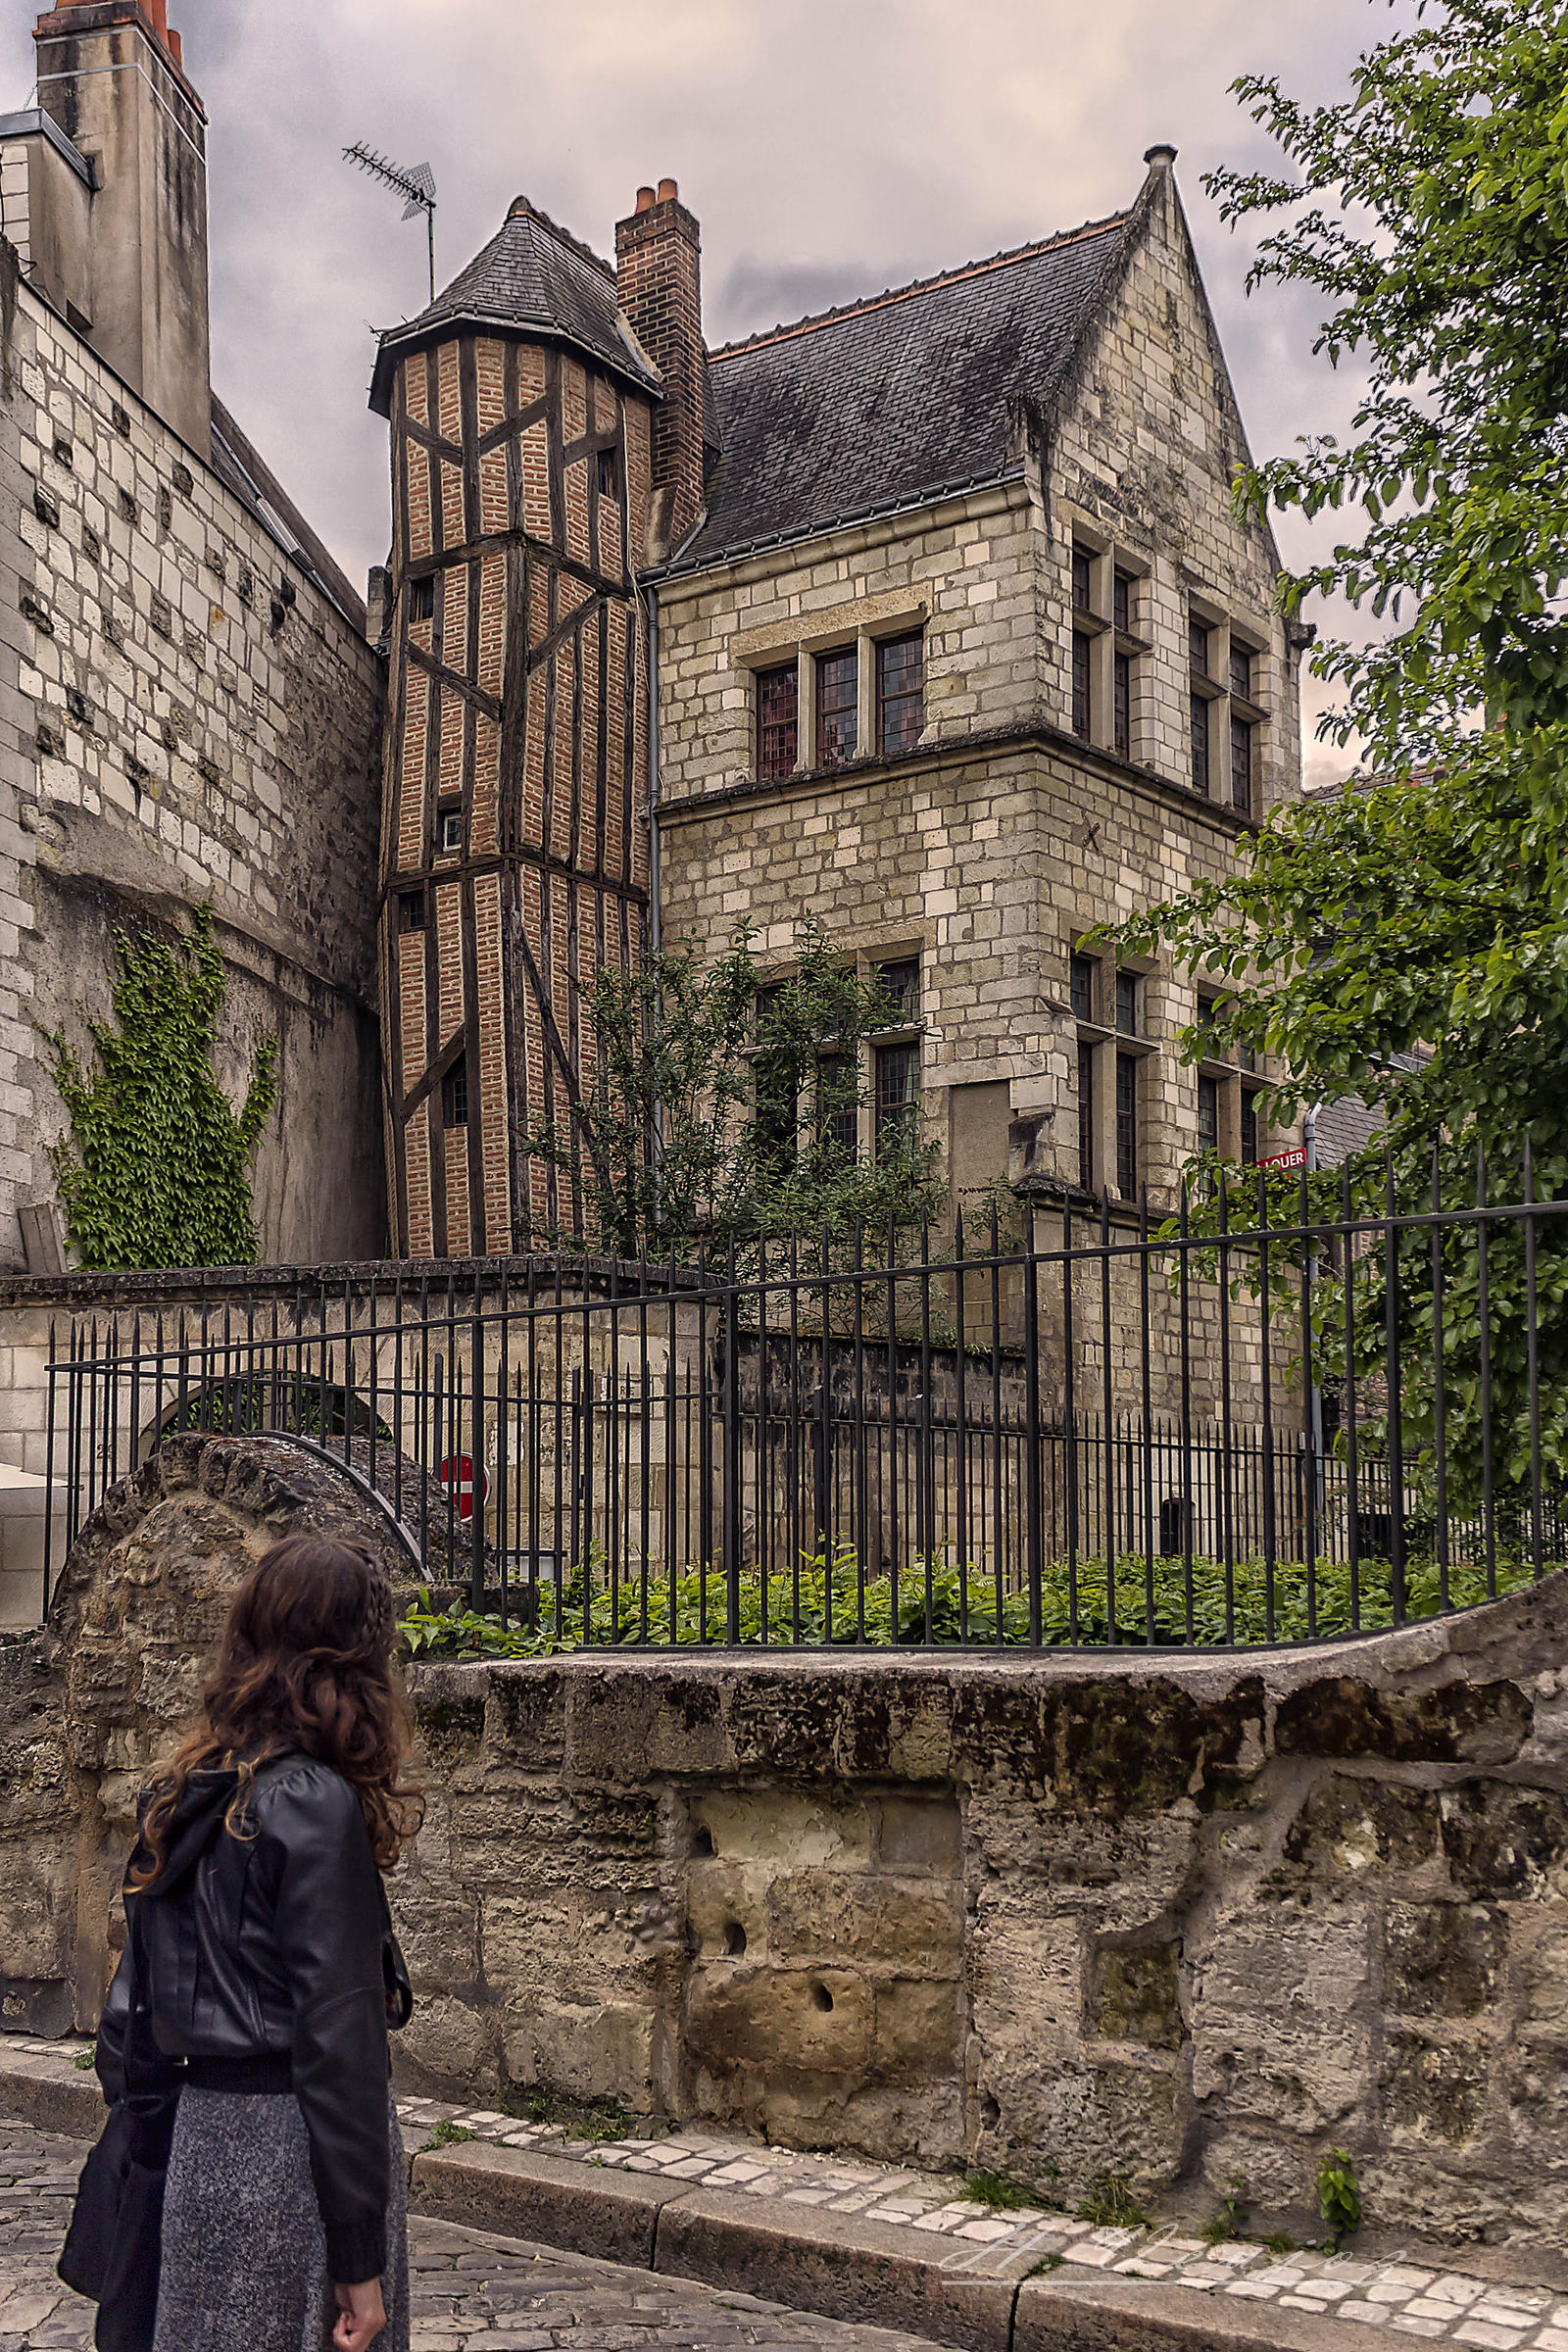 A street in Tours France by hubert61